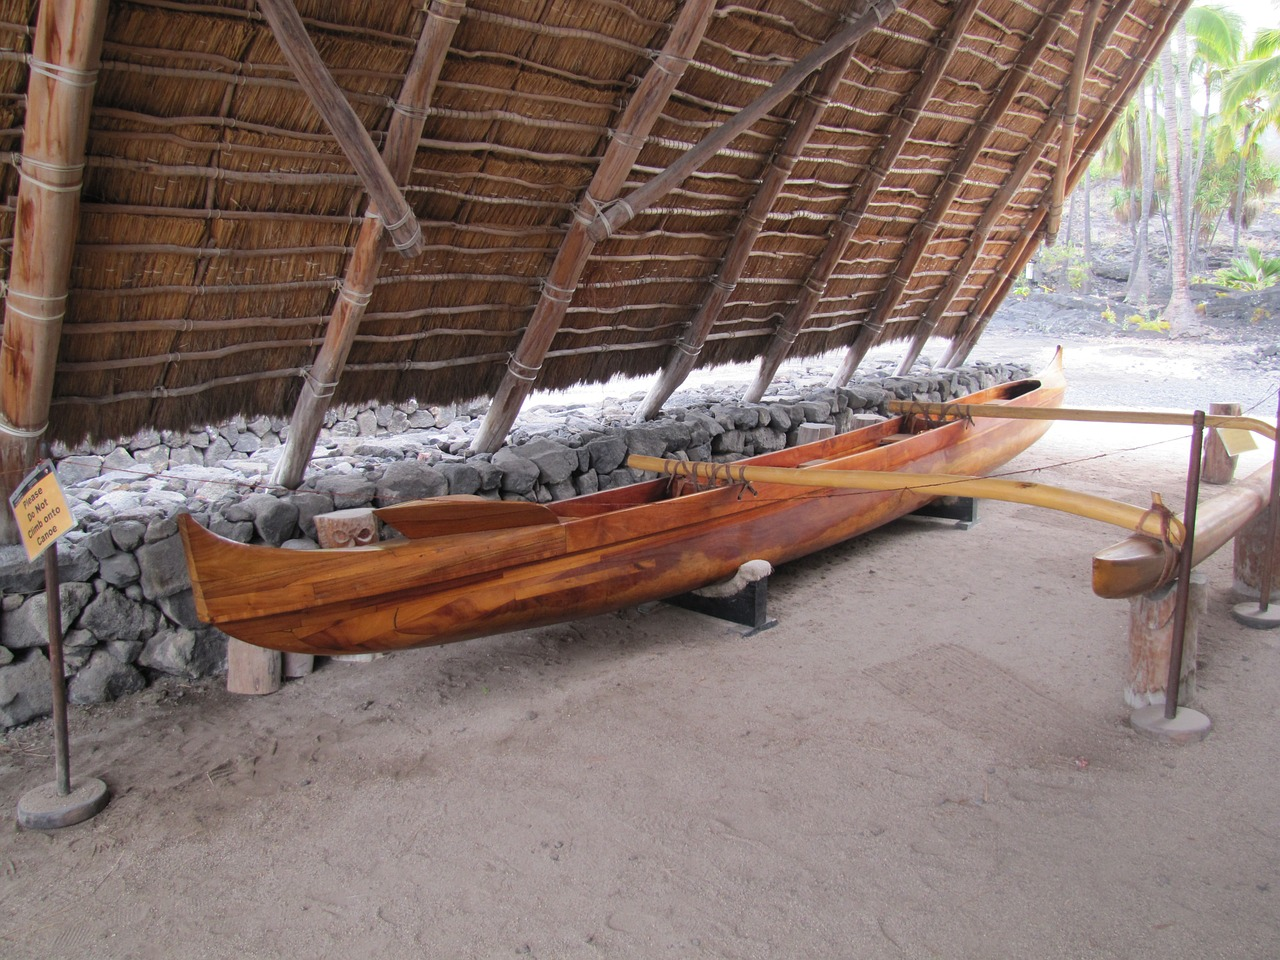 A monohull canoe with an attached exterior outrigger is shown in this file photo.